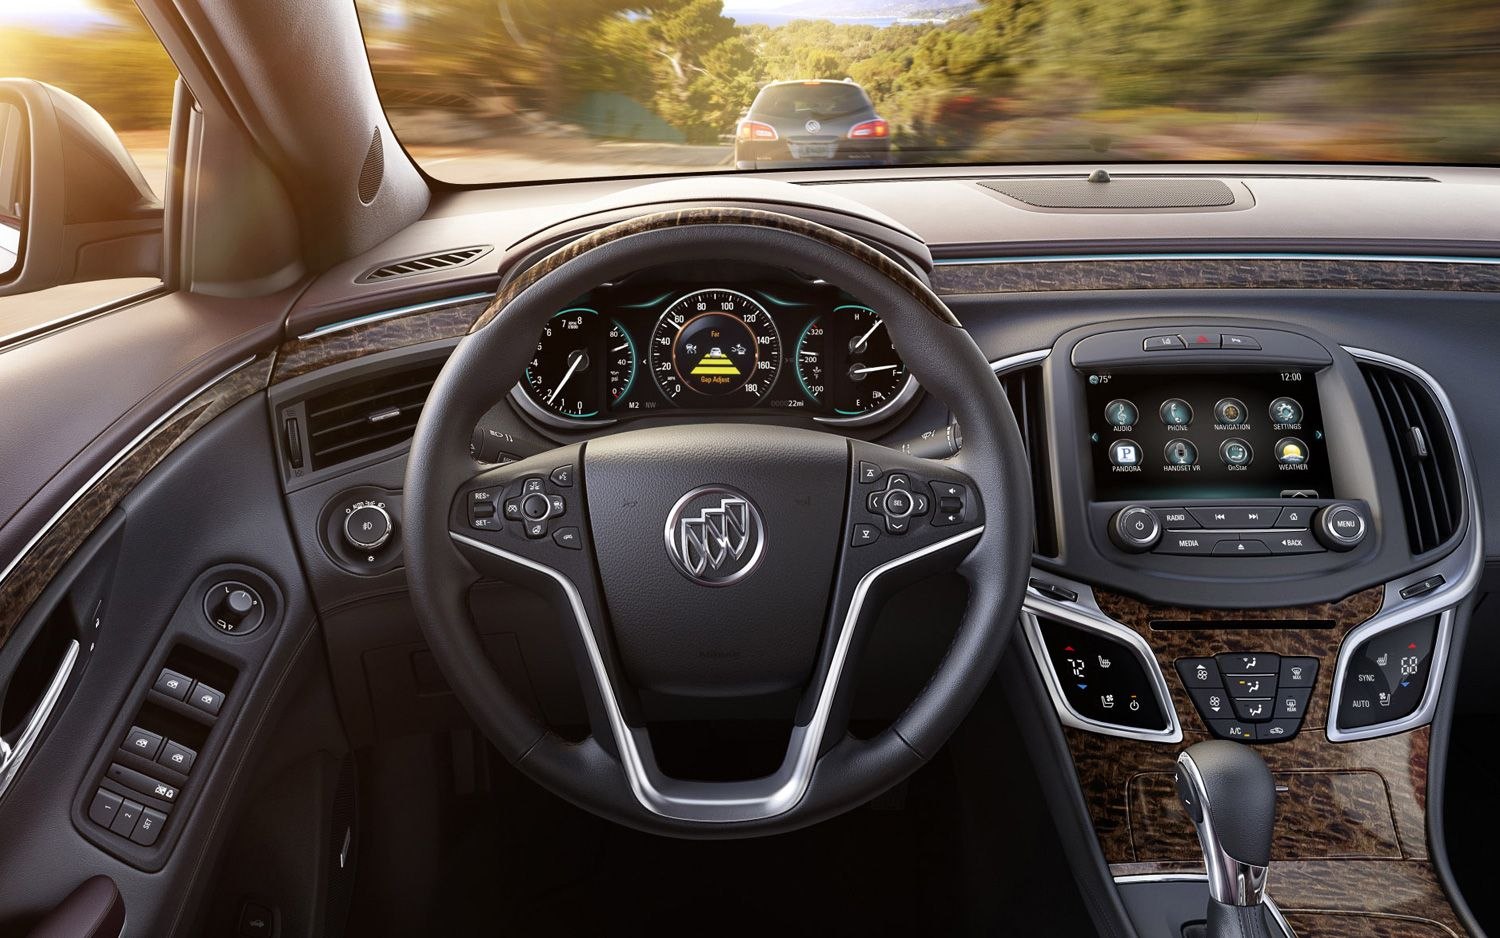 Refreshed 2014 Buick Lacrosse Has Enclave Like Face 2013 New York Buick Lacrosse Buick Verano Buick